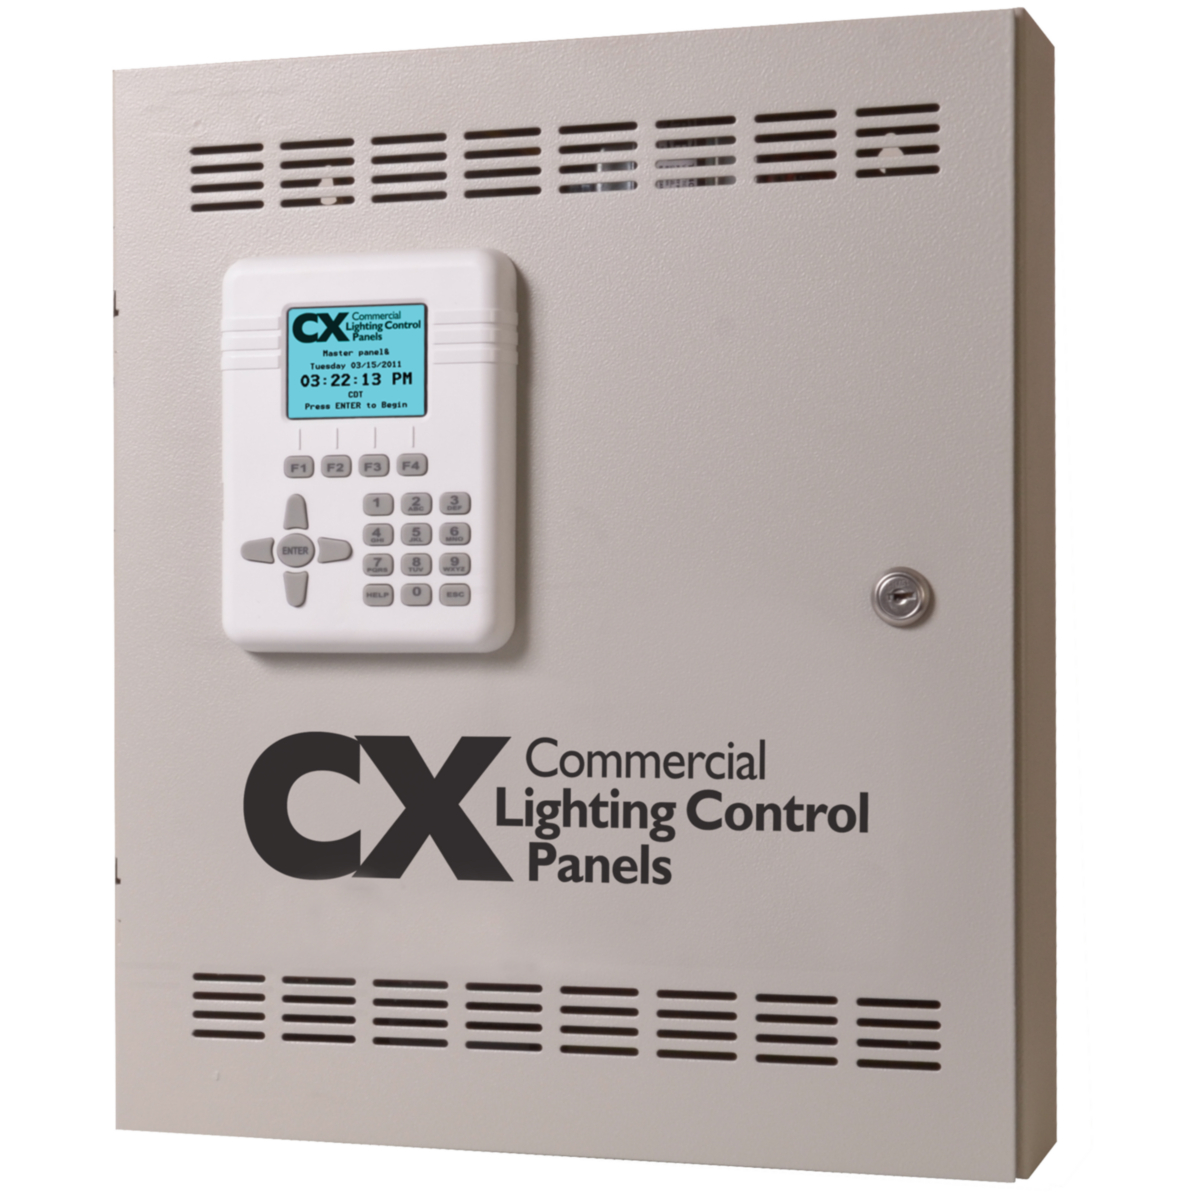 Cx Lighting Control Panels 4 And 8 Relays Brand Hubbell Fuse Relay Box Enclosure Hcs Cx04 Panel Jmk1192 3 Prodimage